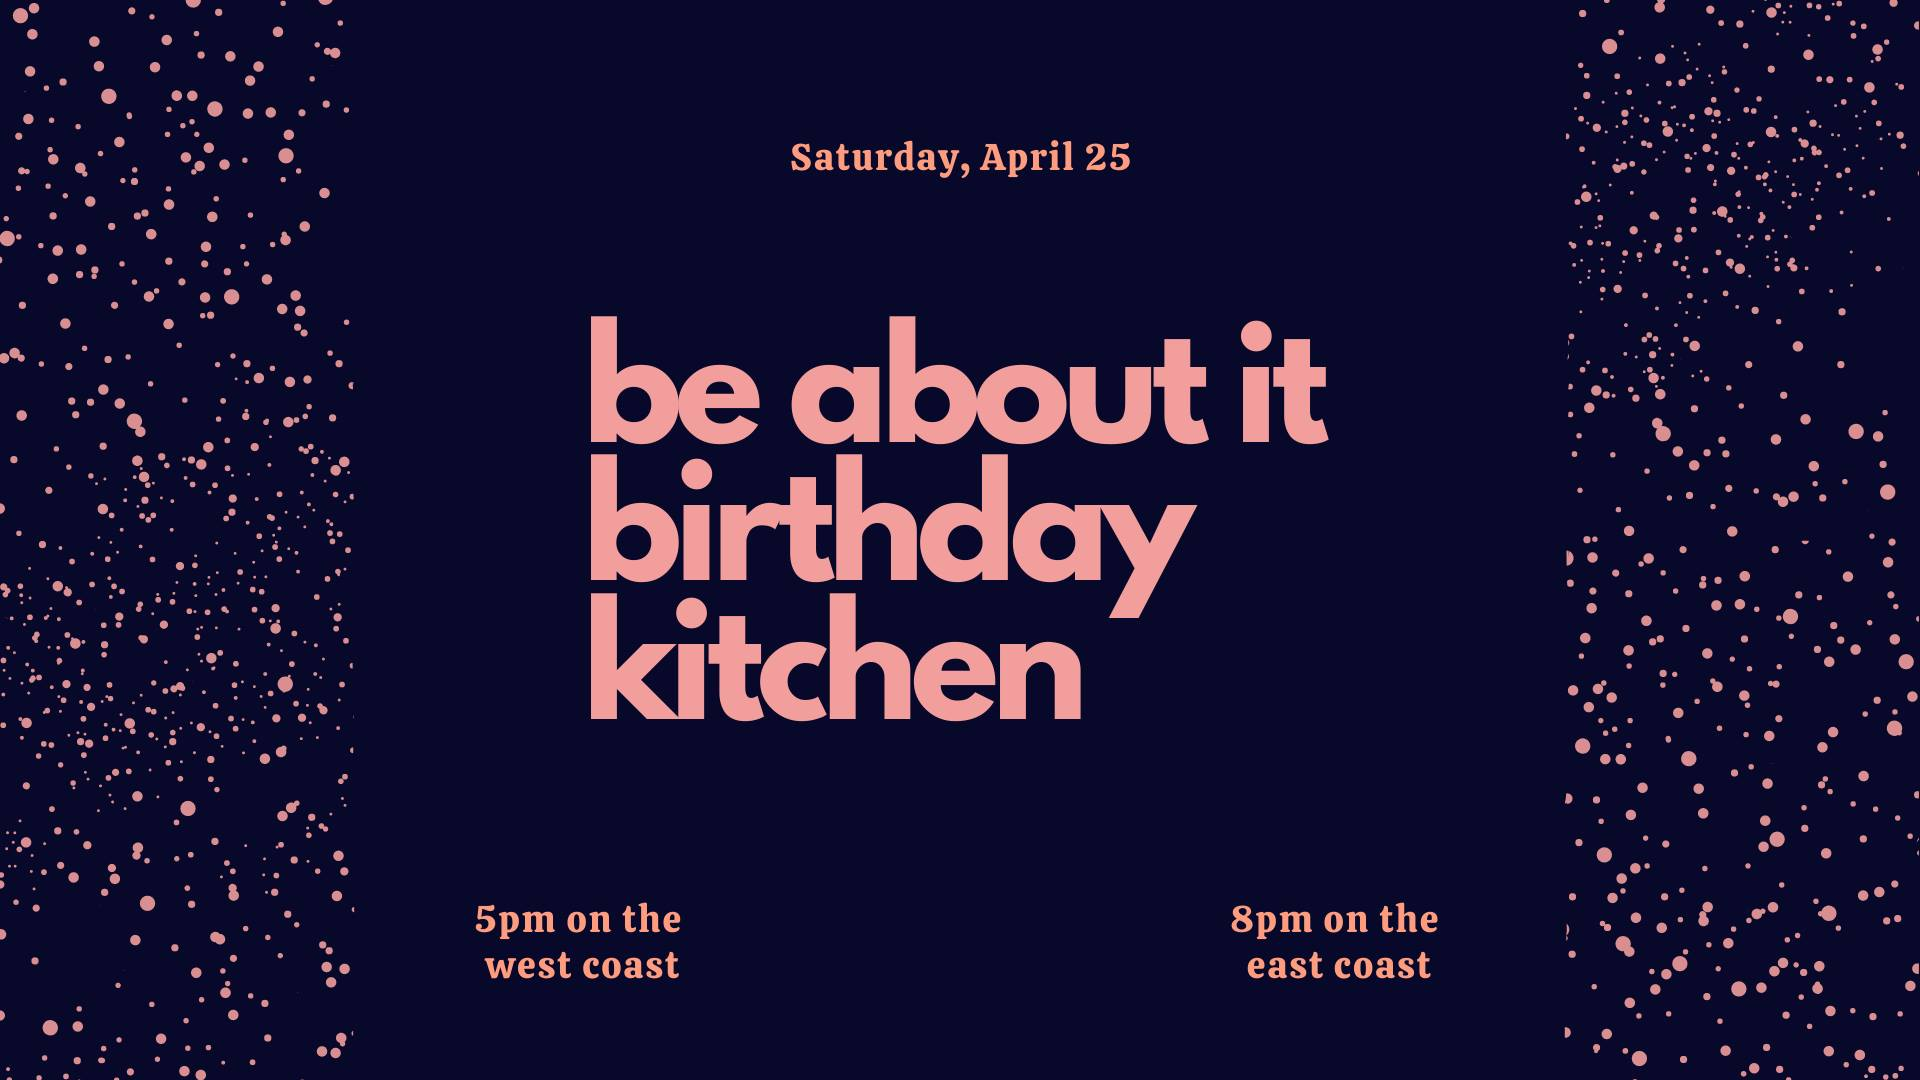 Be About It Birthday Kitchen